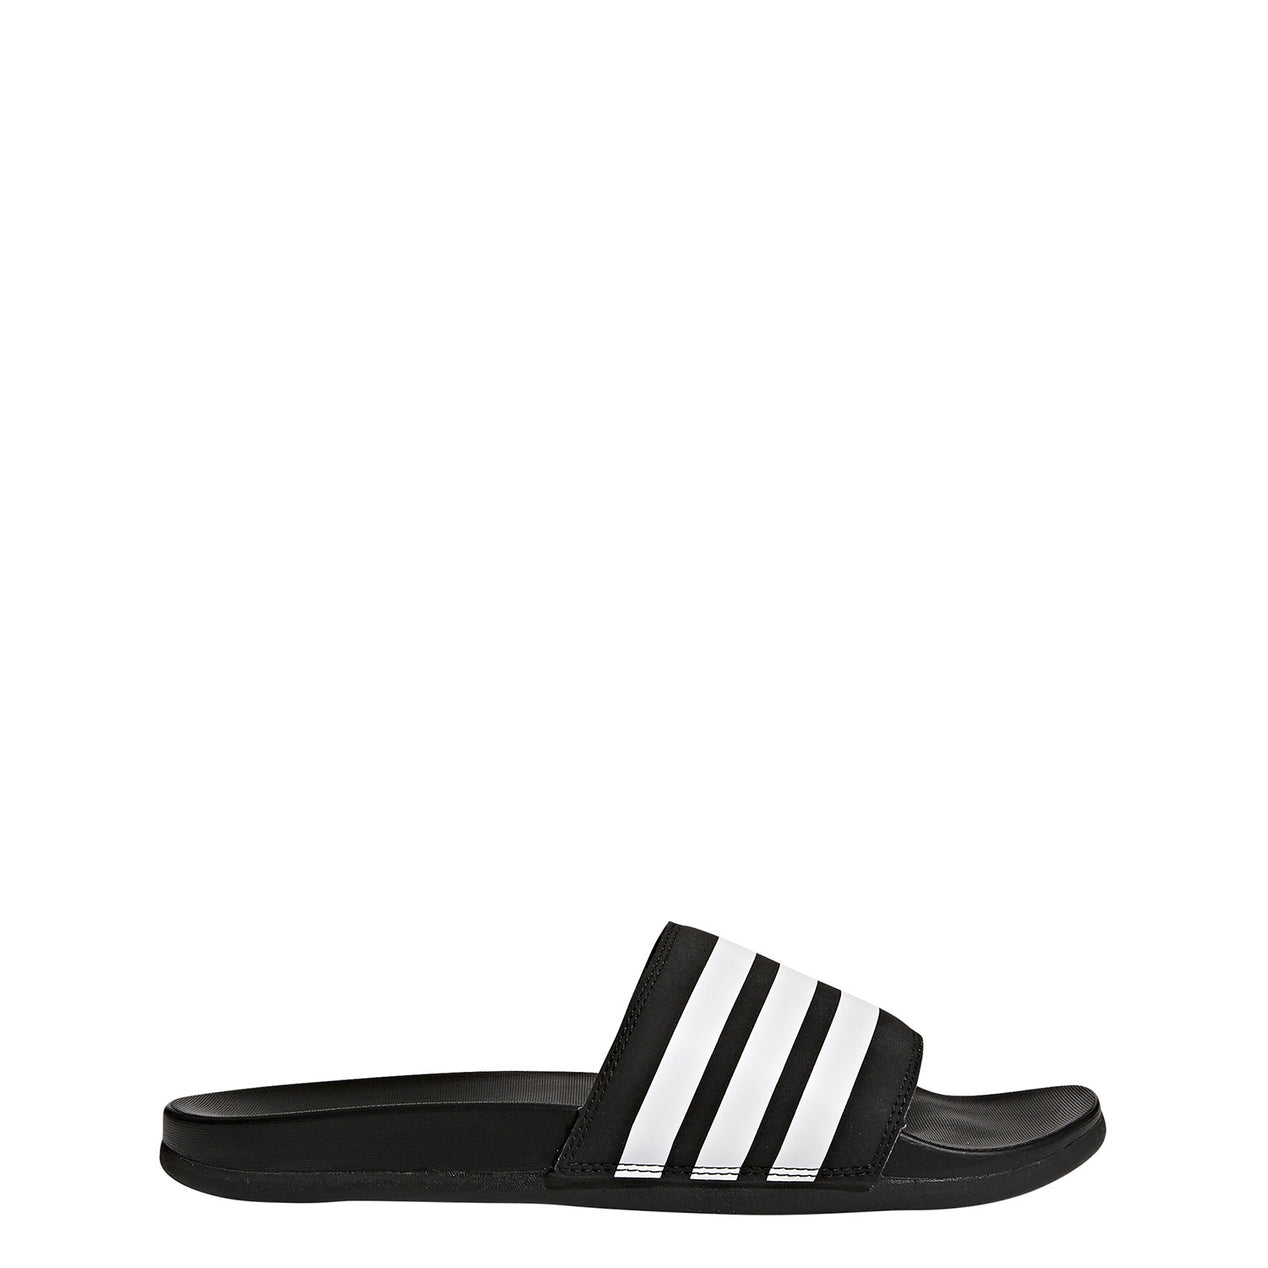 a33e4b44b Adidas Adilette Cloudfoam Plus Stripes Slides - Men s